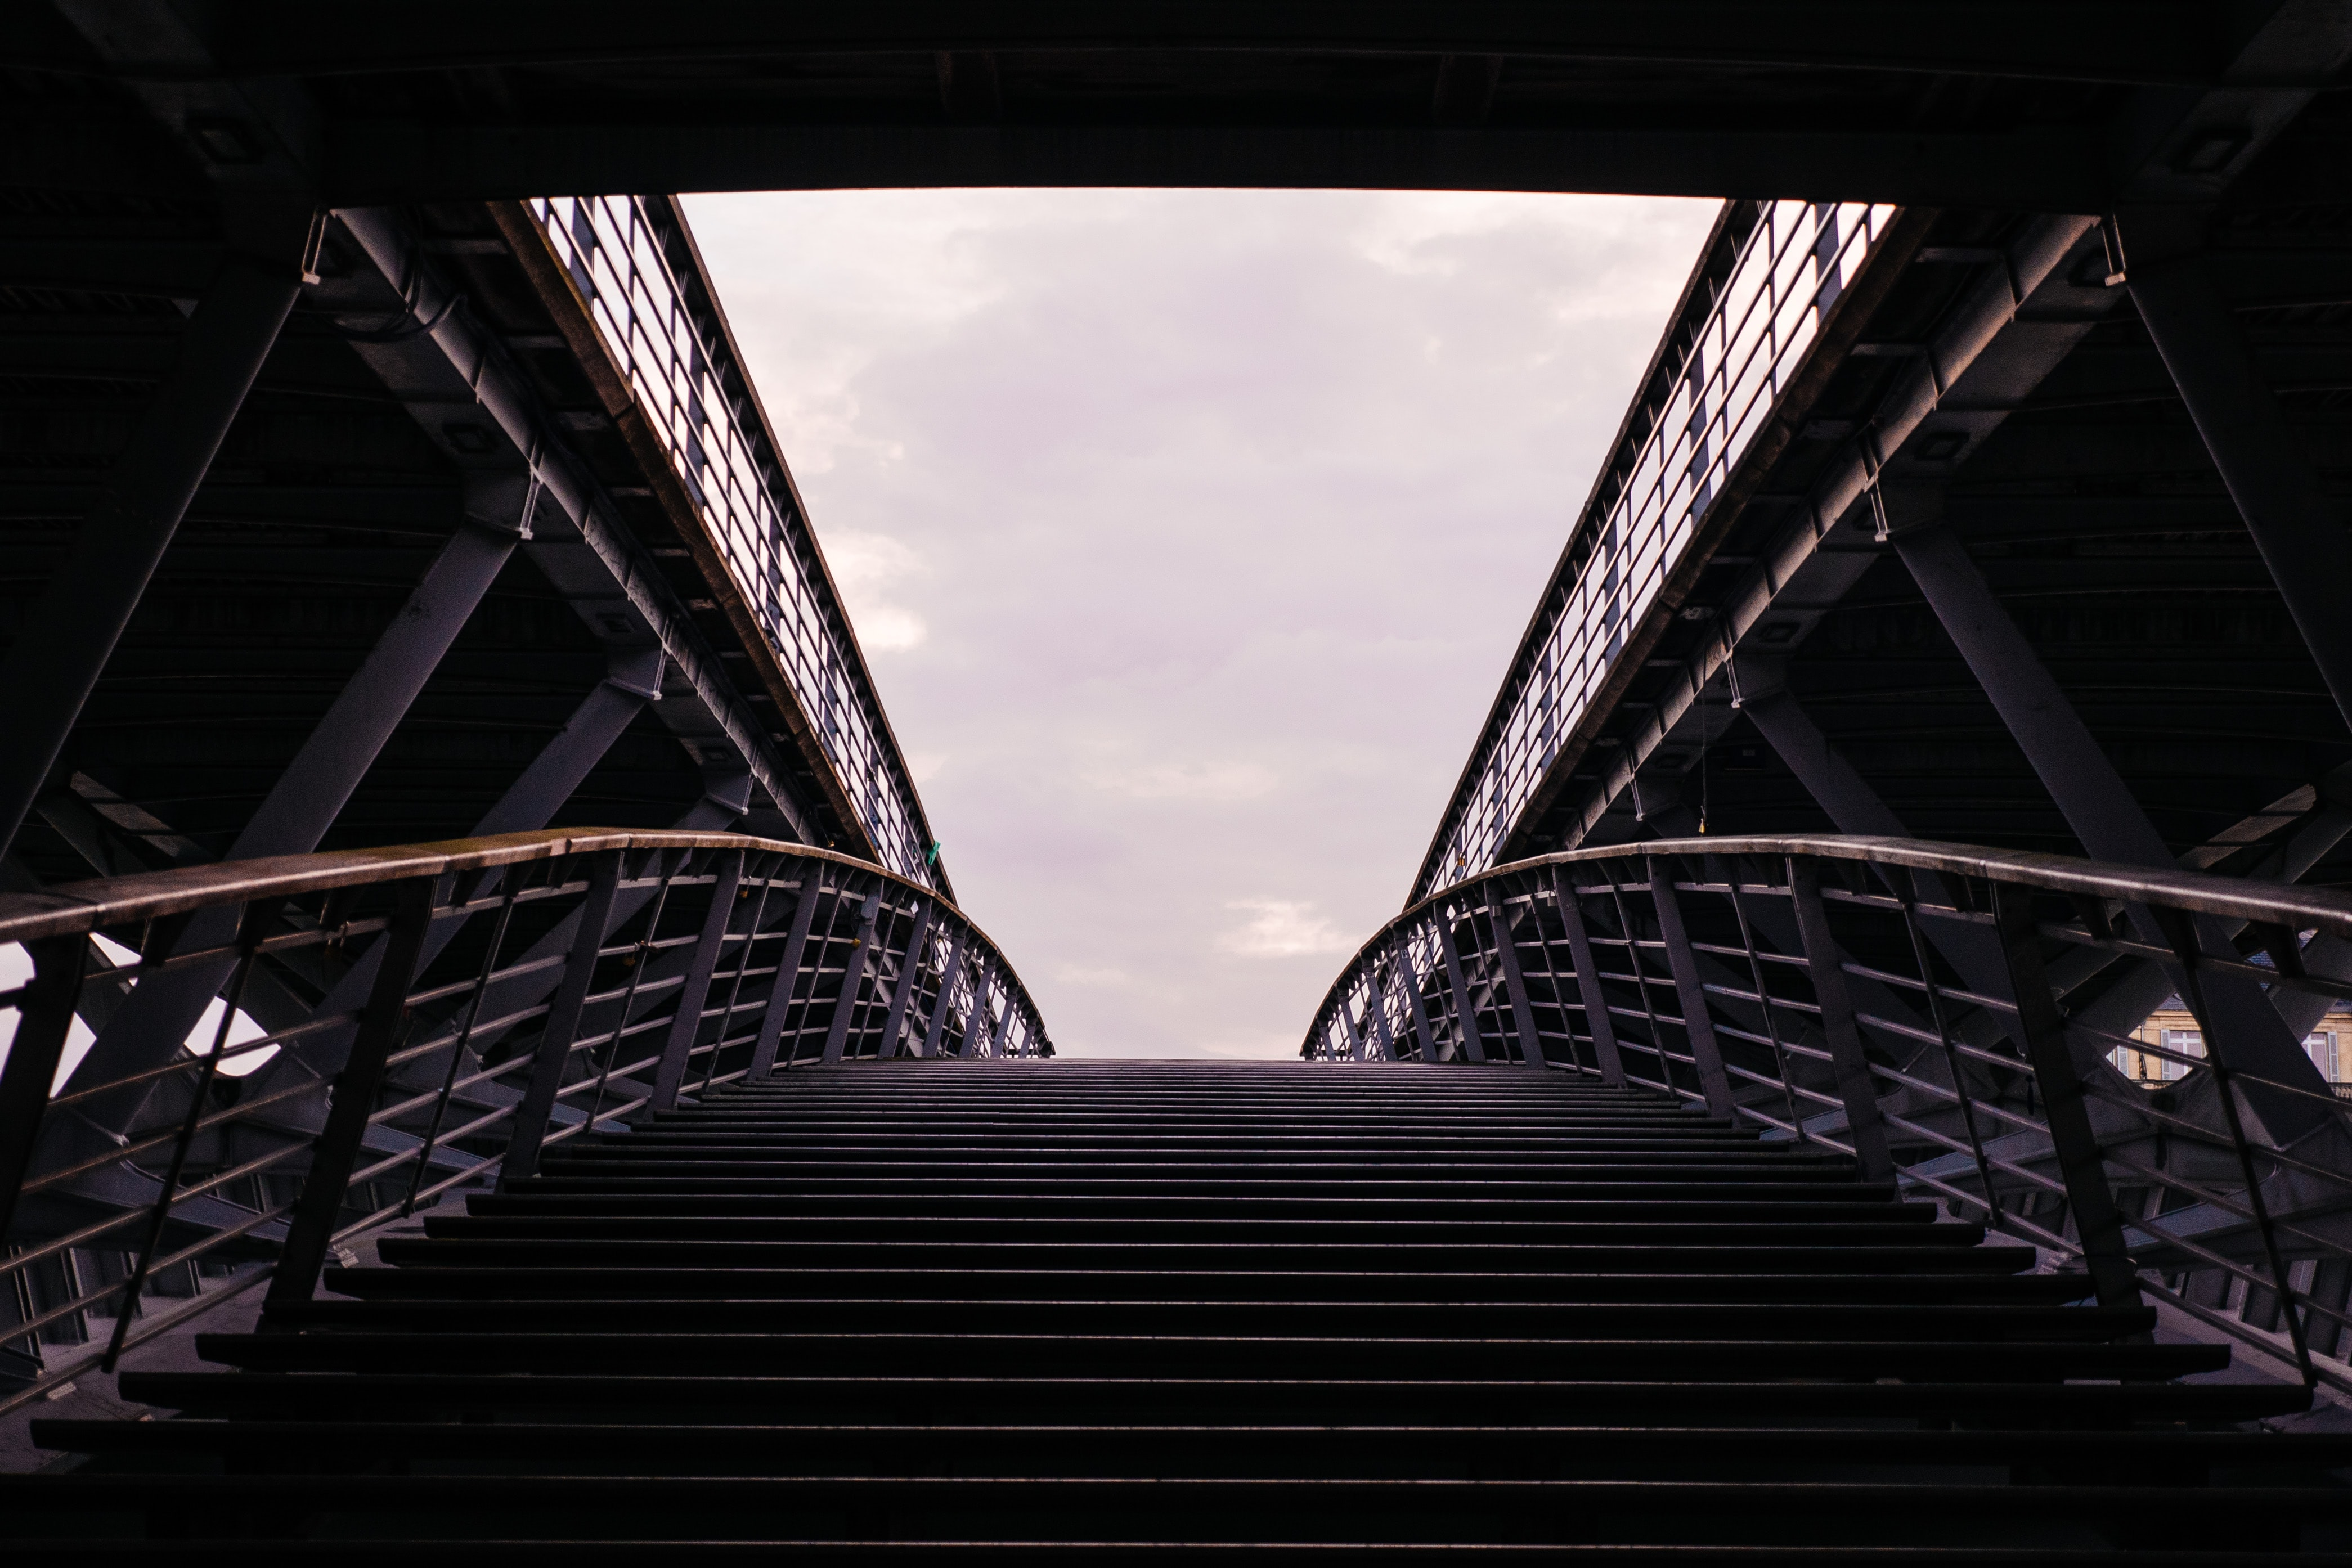 A symmetrical shot of stairs leading up to a bridge